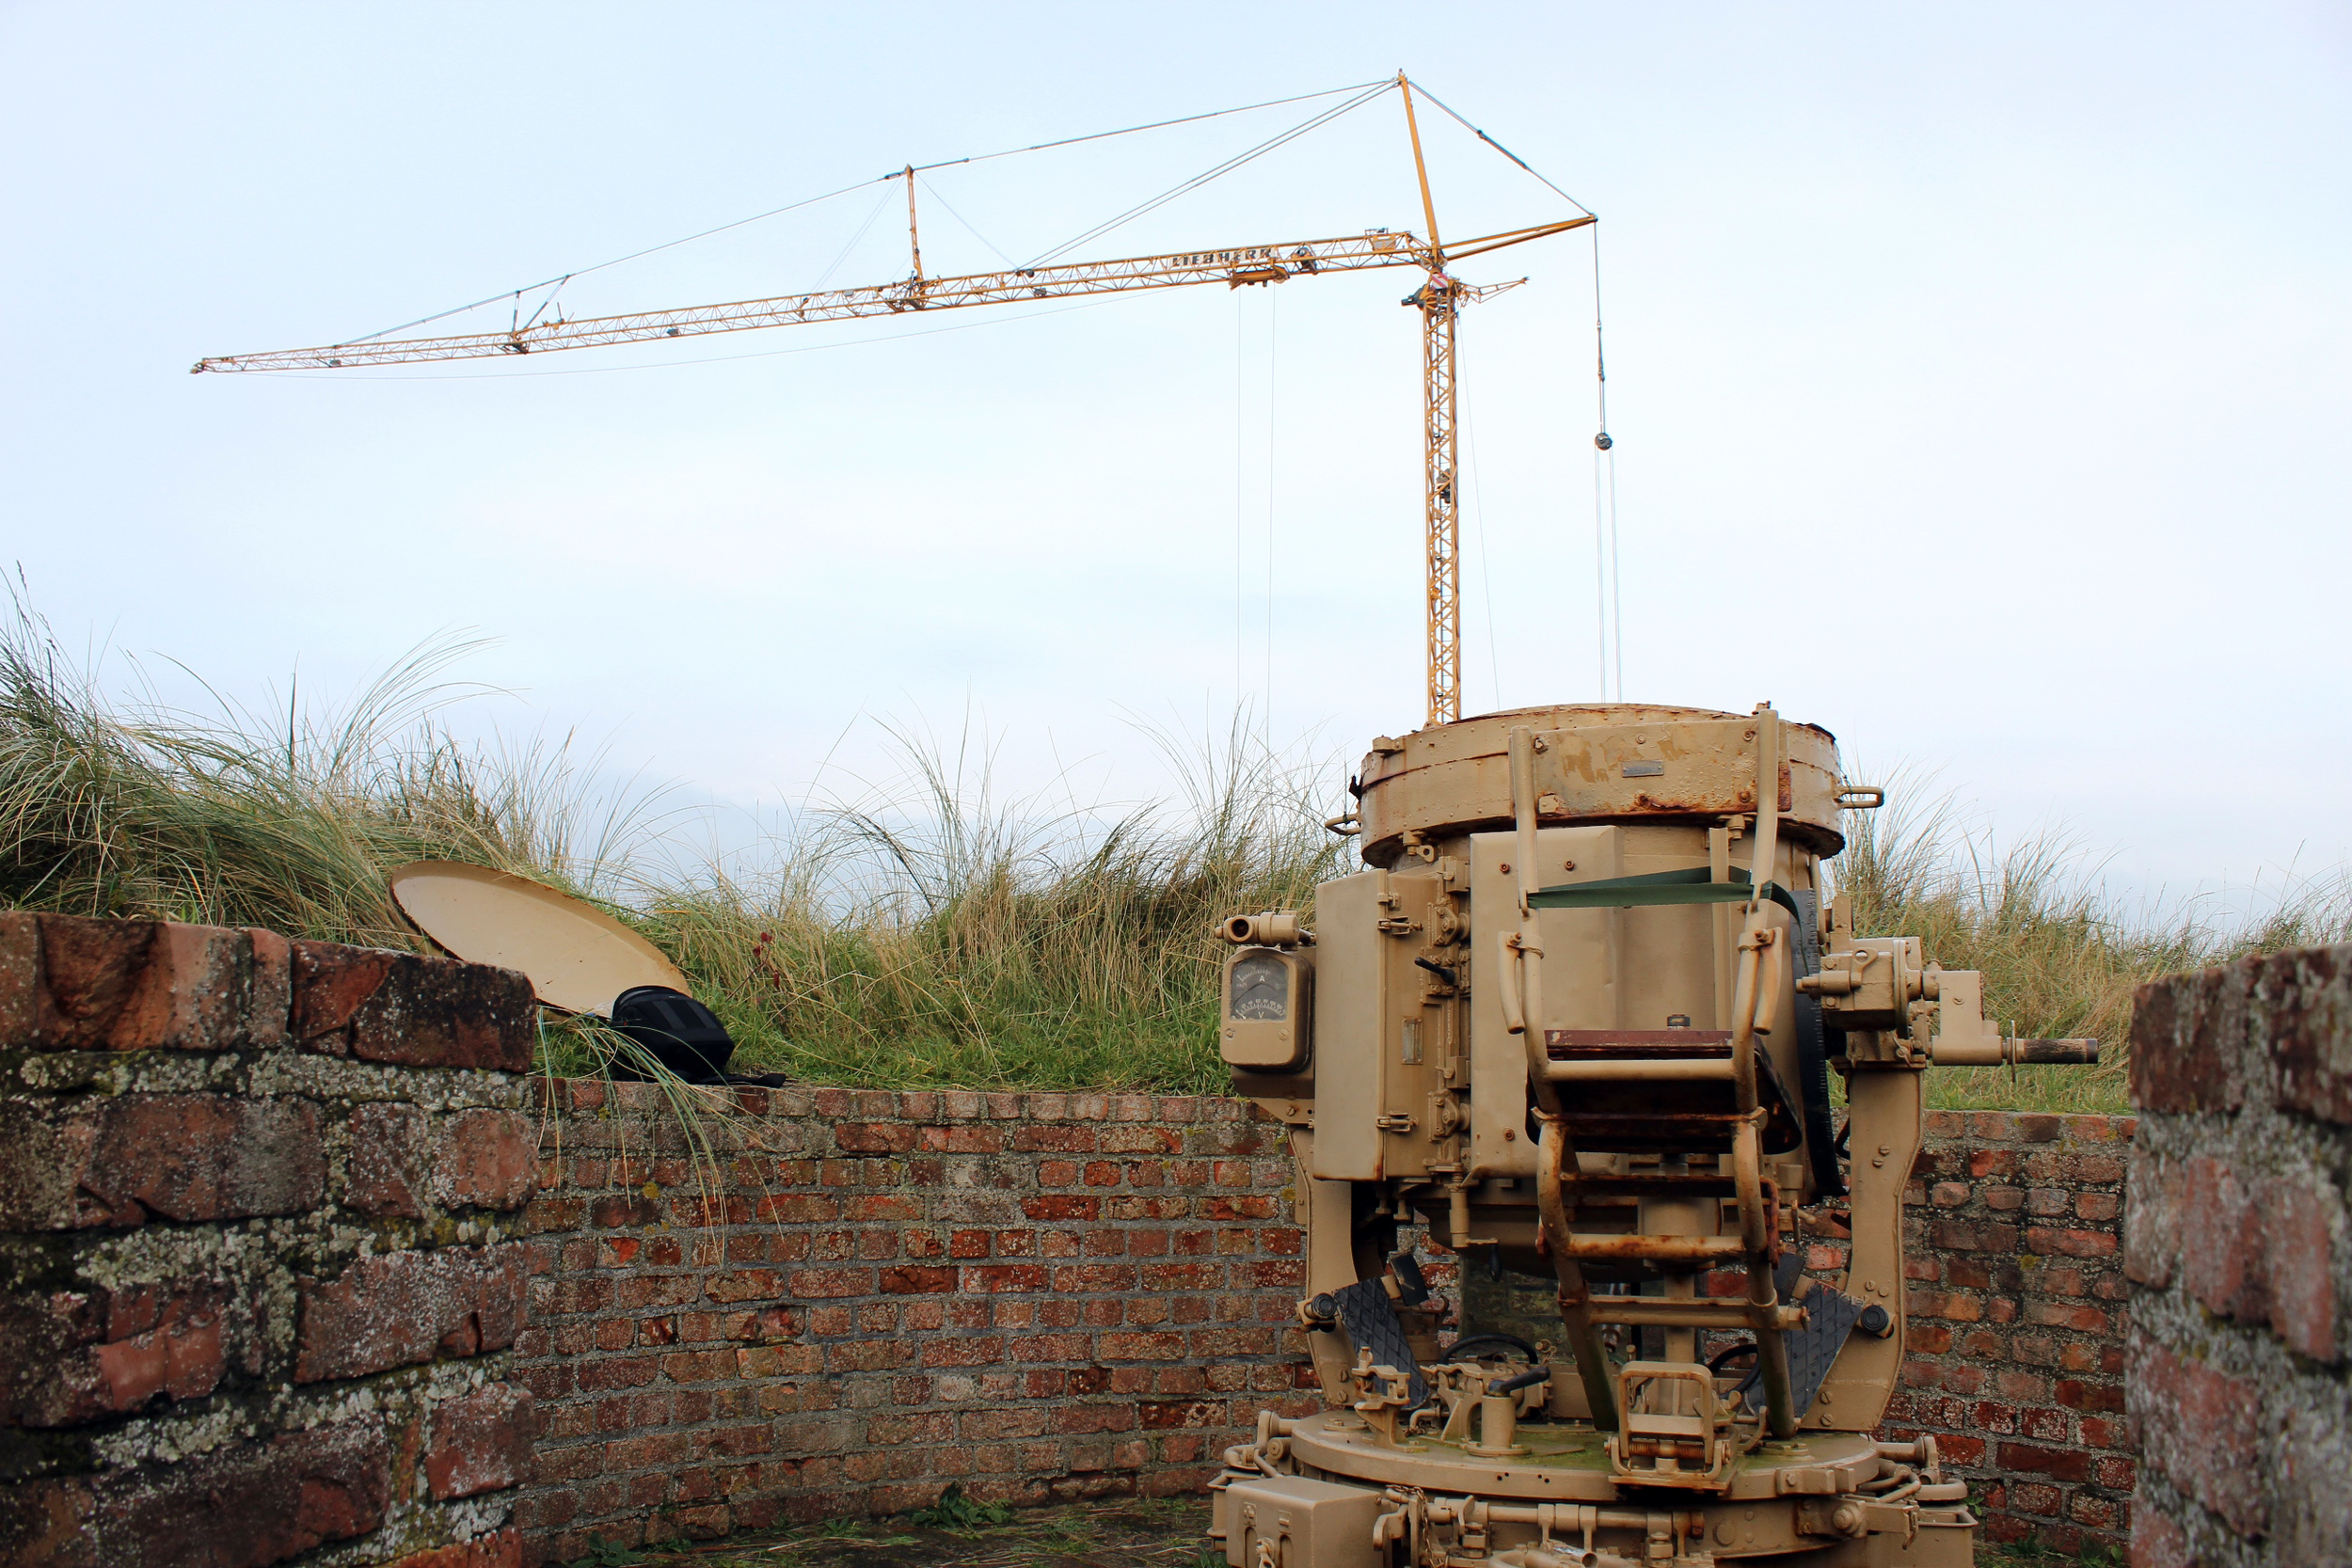 recovery of the searchlight from the dunes by crane